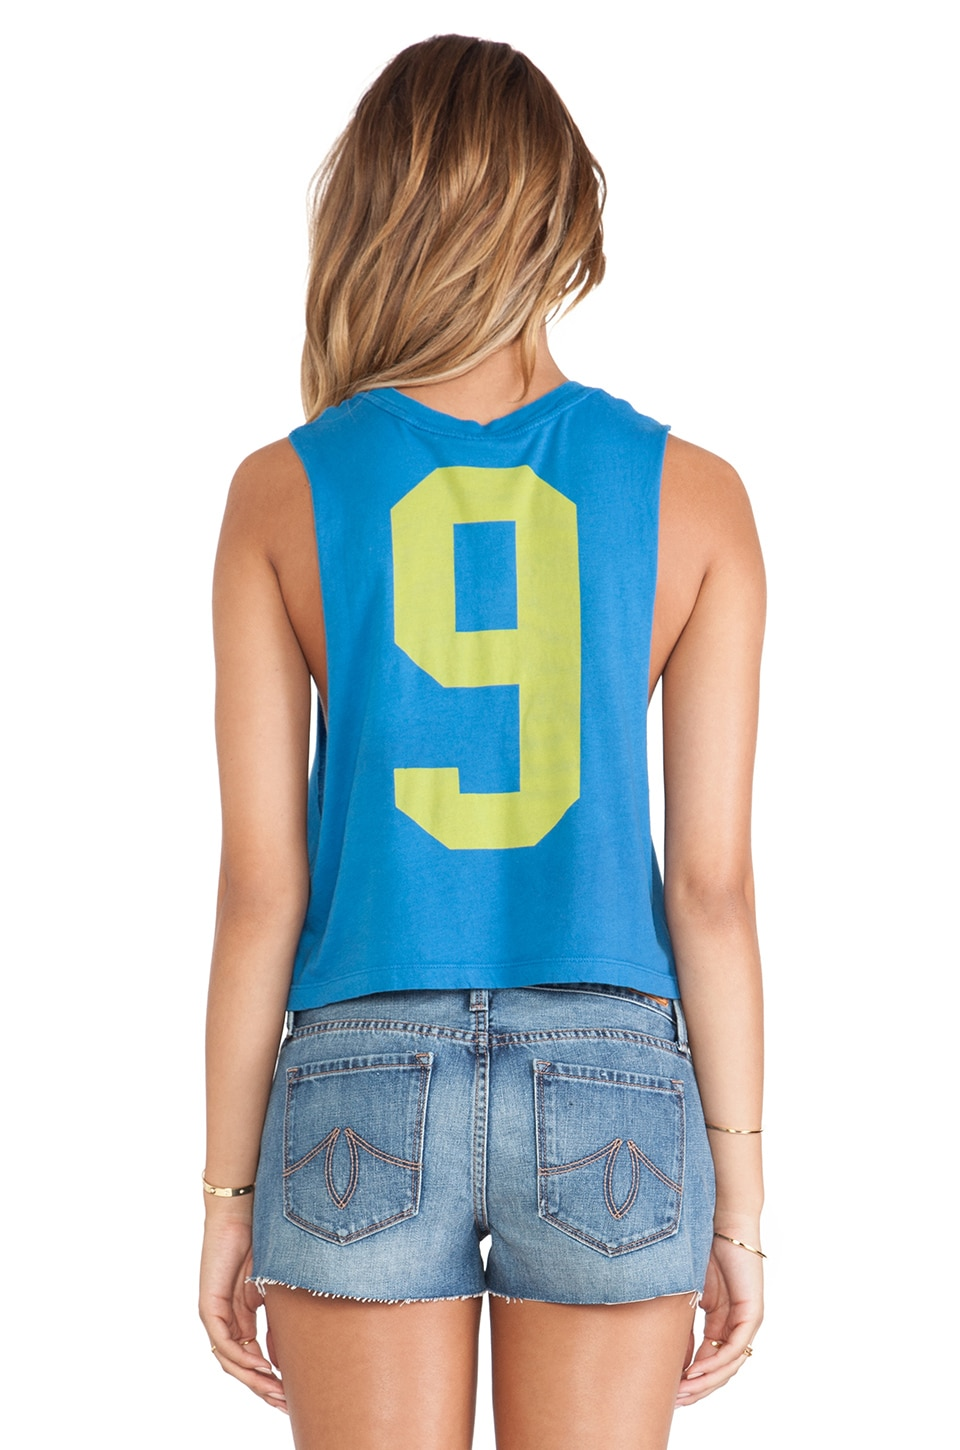 Rebel Yell Jogging Muscle Cut Off Tank in Royal